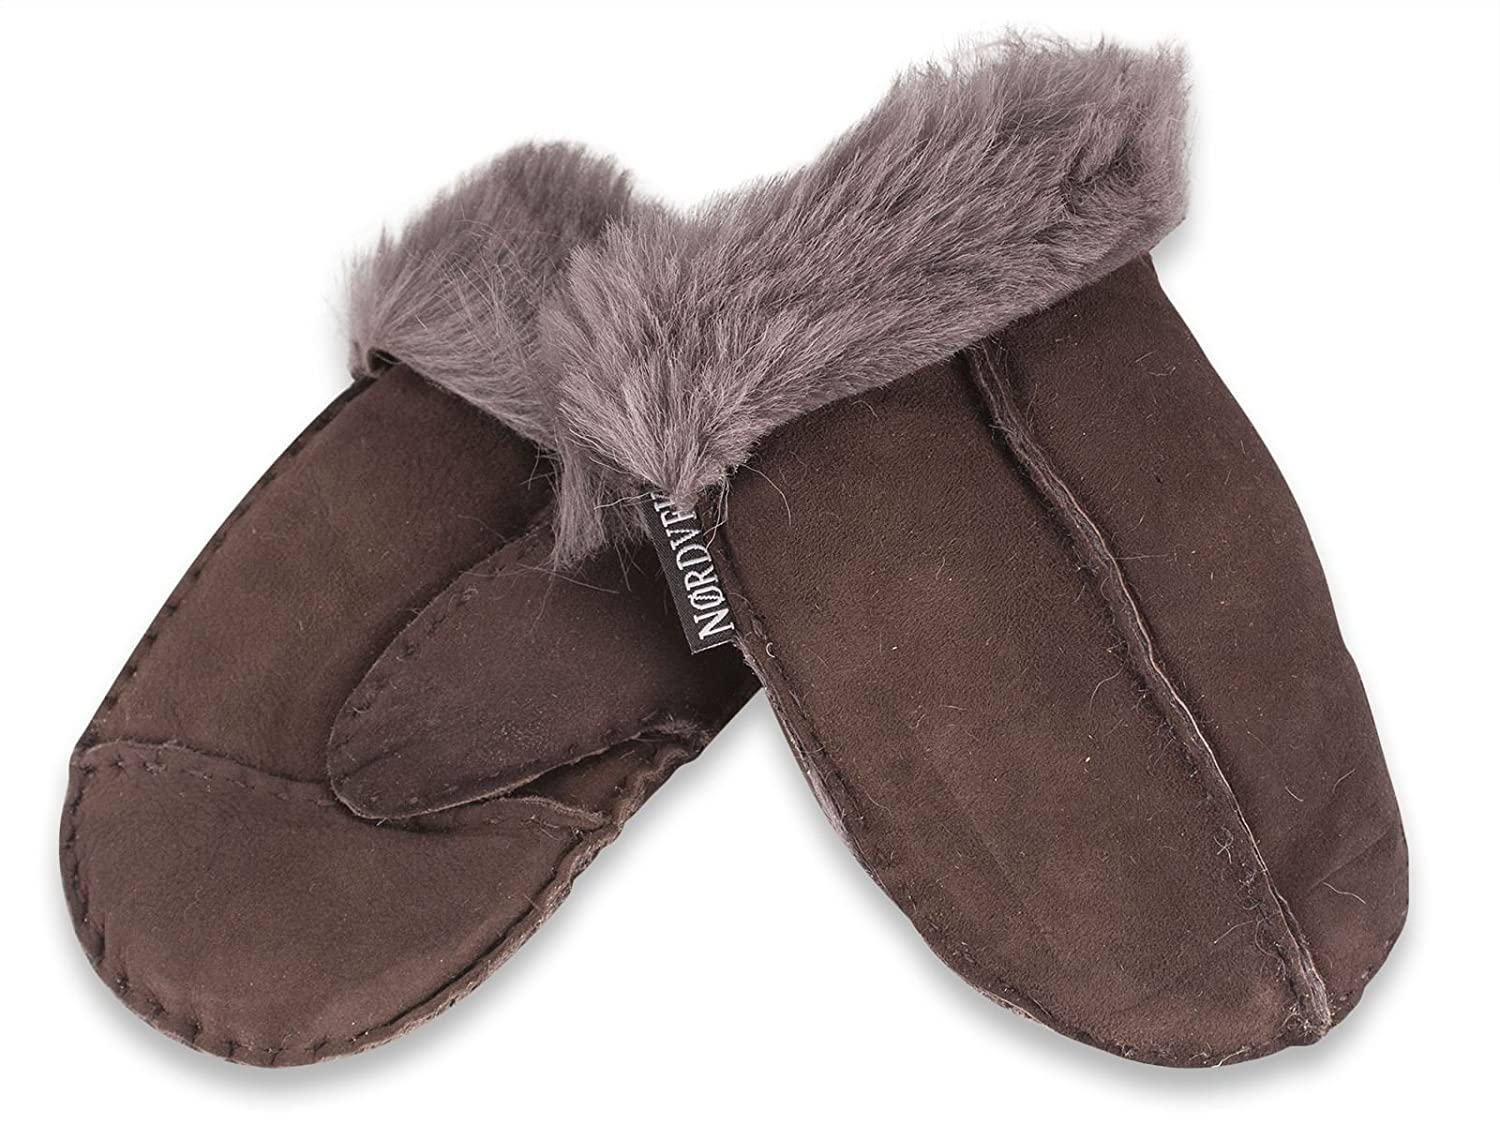 Nordvek 3-8 Years Childrens Sheepskin Mittens # 325-100 - Dark Chocolate-Medium